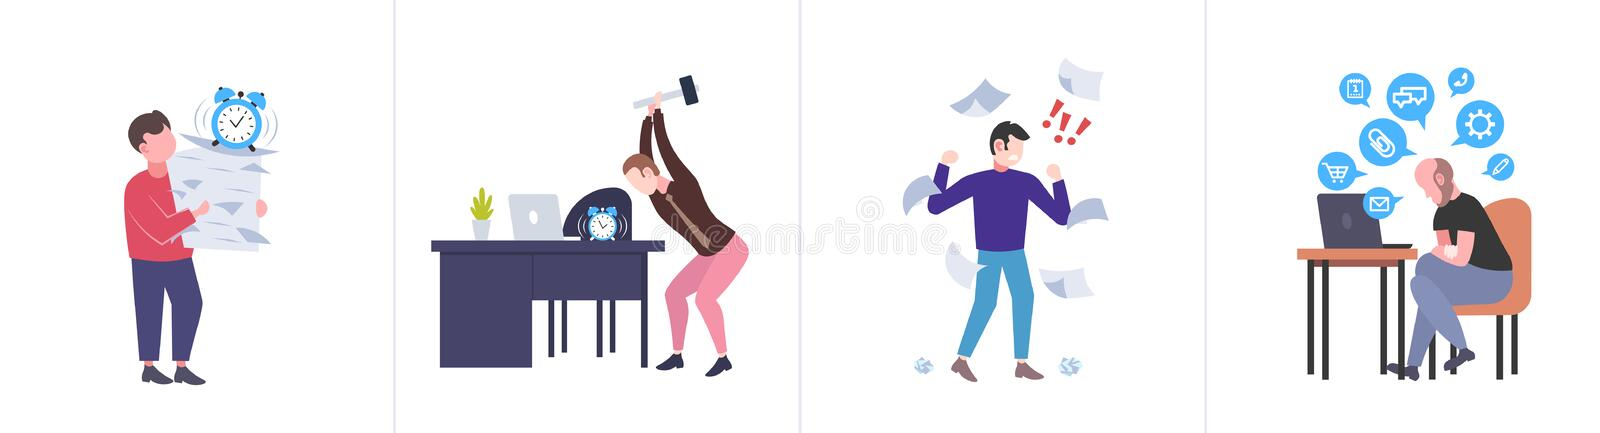 Set different business concepts businesspeople hardworking process concept various working situations horizontal flat stock illustration